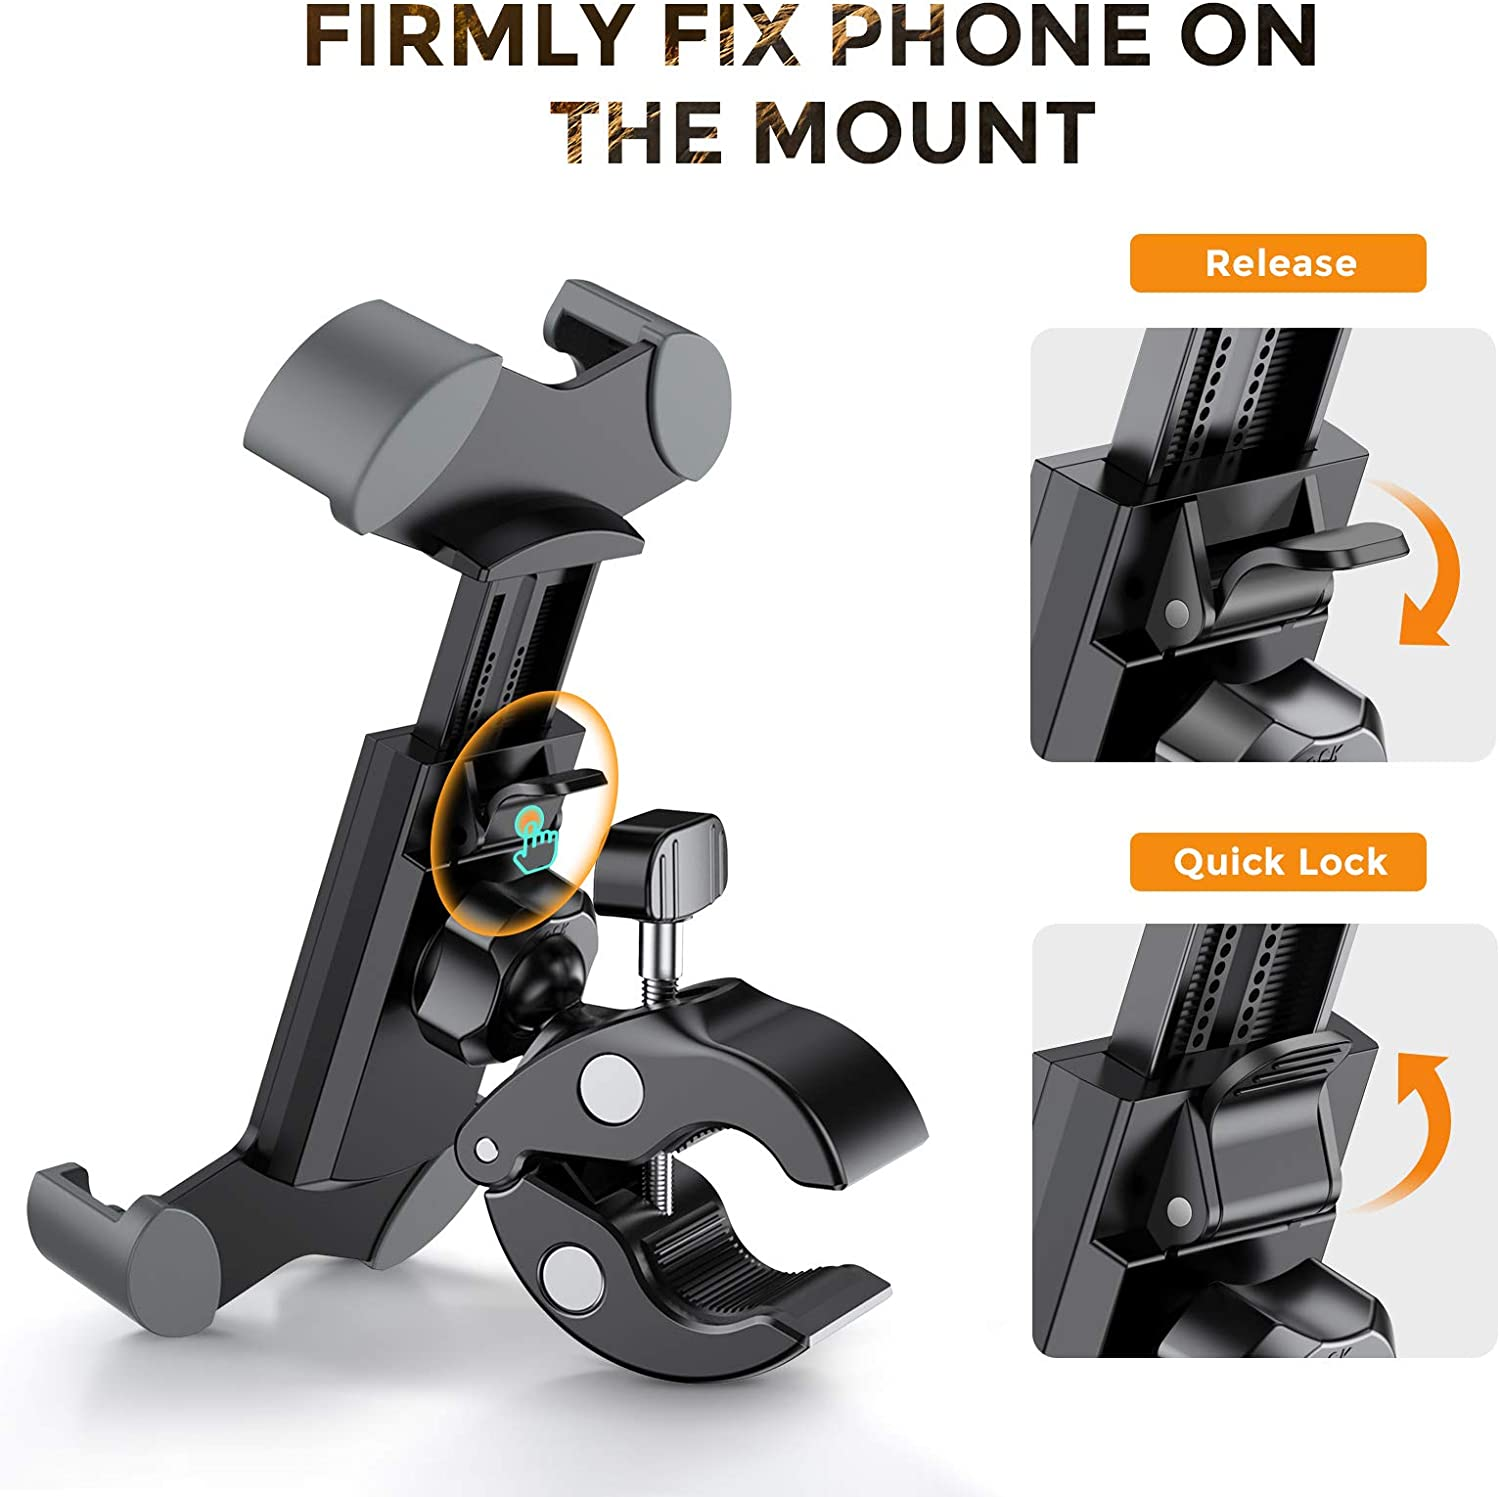 JOYROOM Universal Bike Phone Mount 360 Rotation Anti-Shake Phone Mount Holder for OtterBox Bicycle Motorcycle for Handlebars Compatible with iPhone 12 Pro Max//12 mini//12//11 Pro//XR//XS MAX